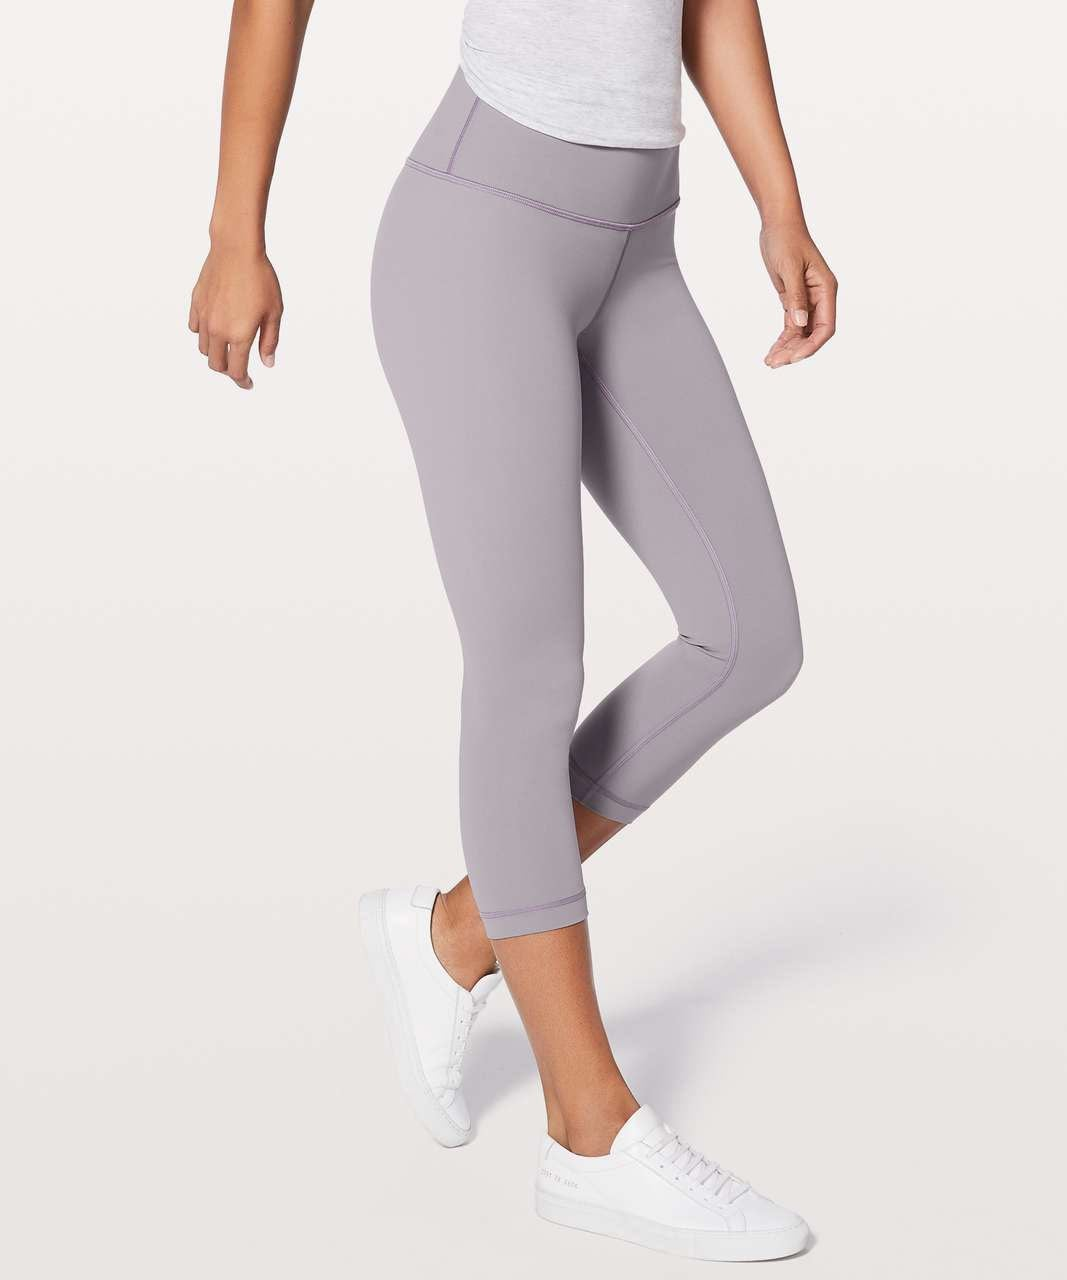 lululemon HR Wunder Under Crop, sz 8